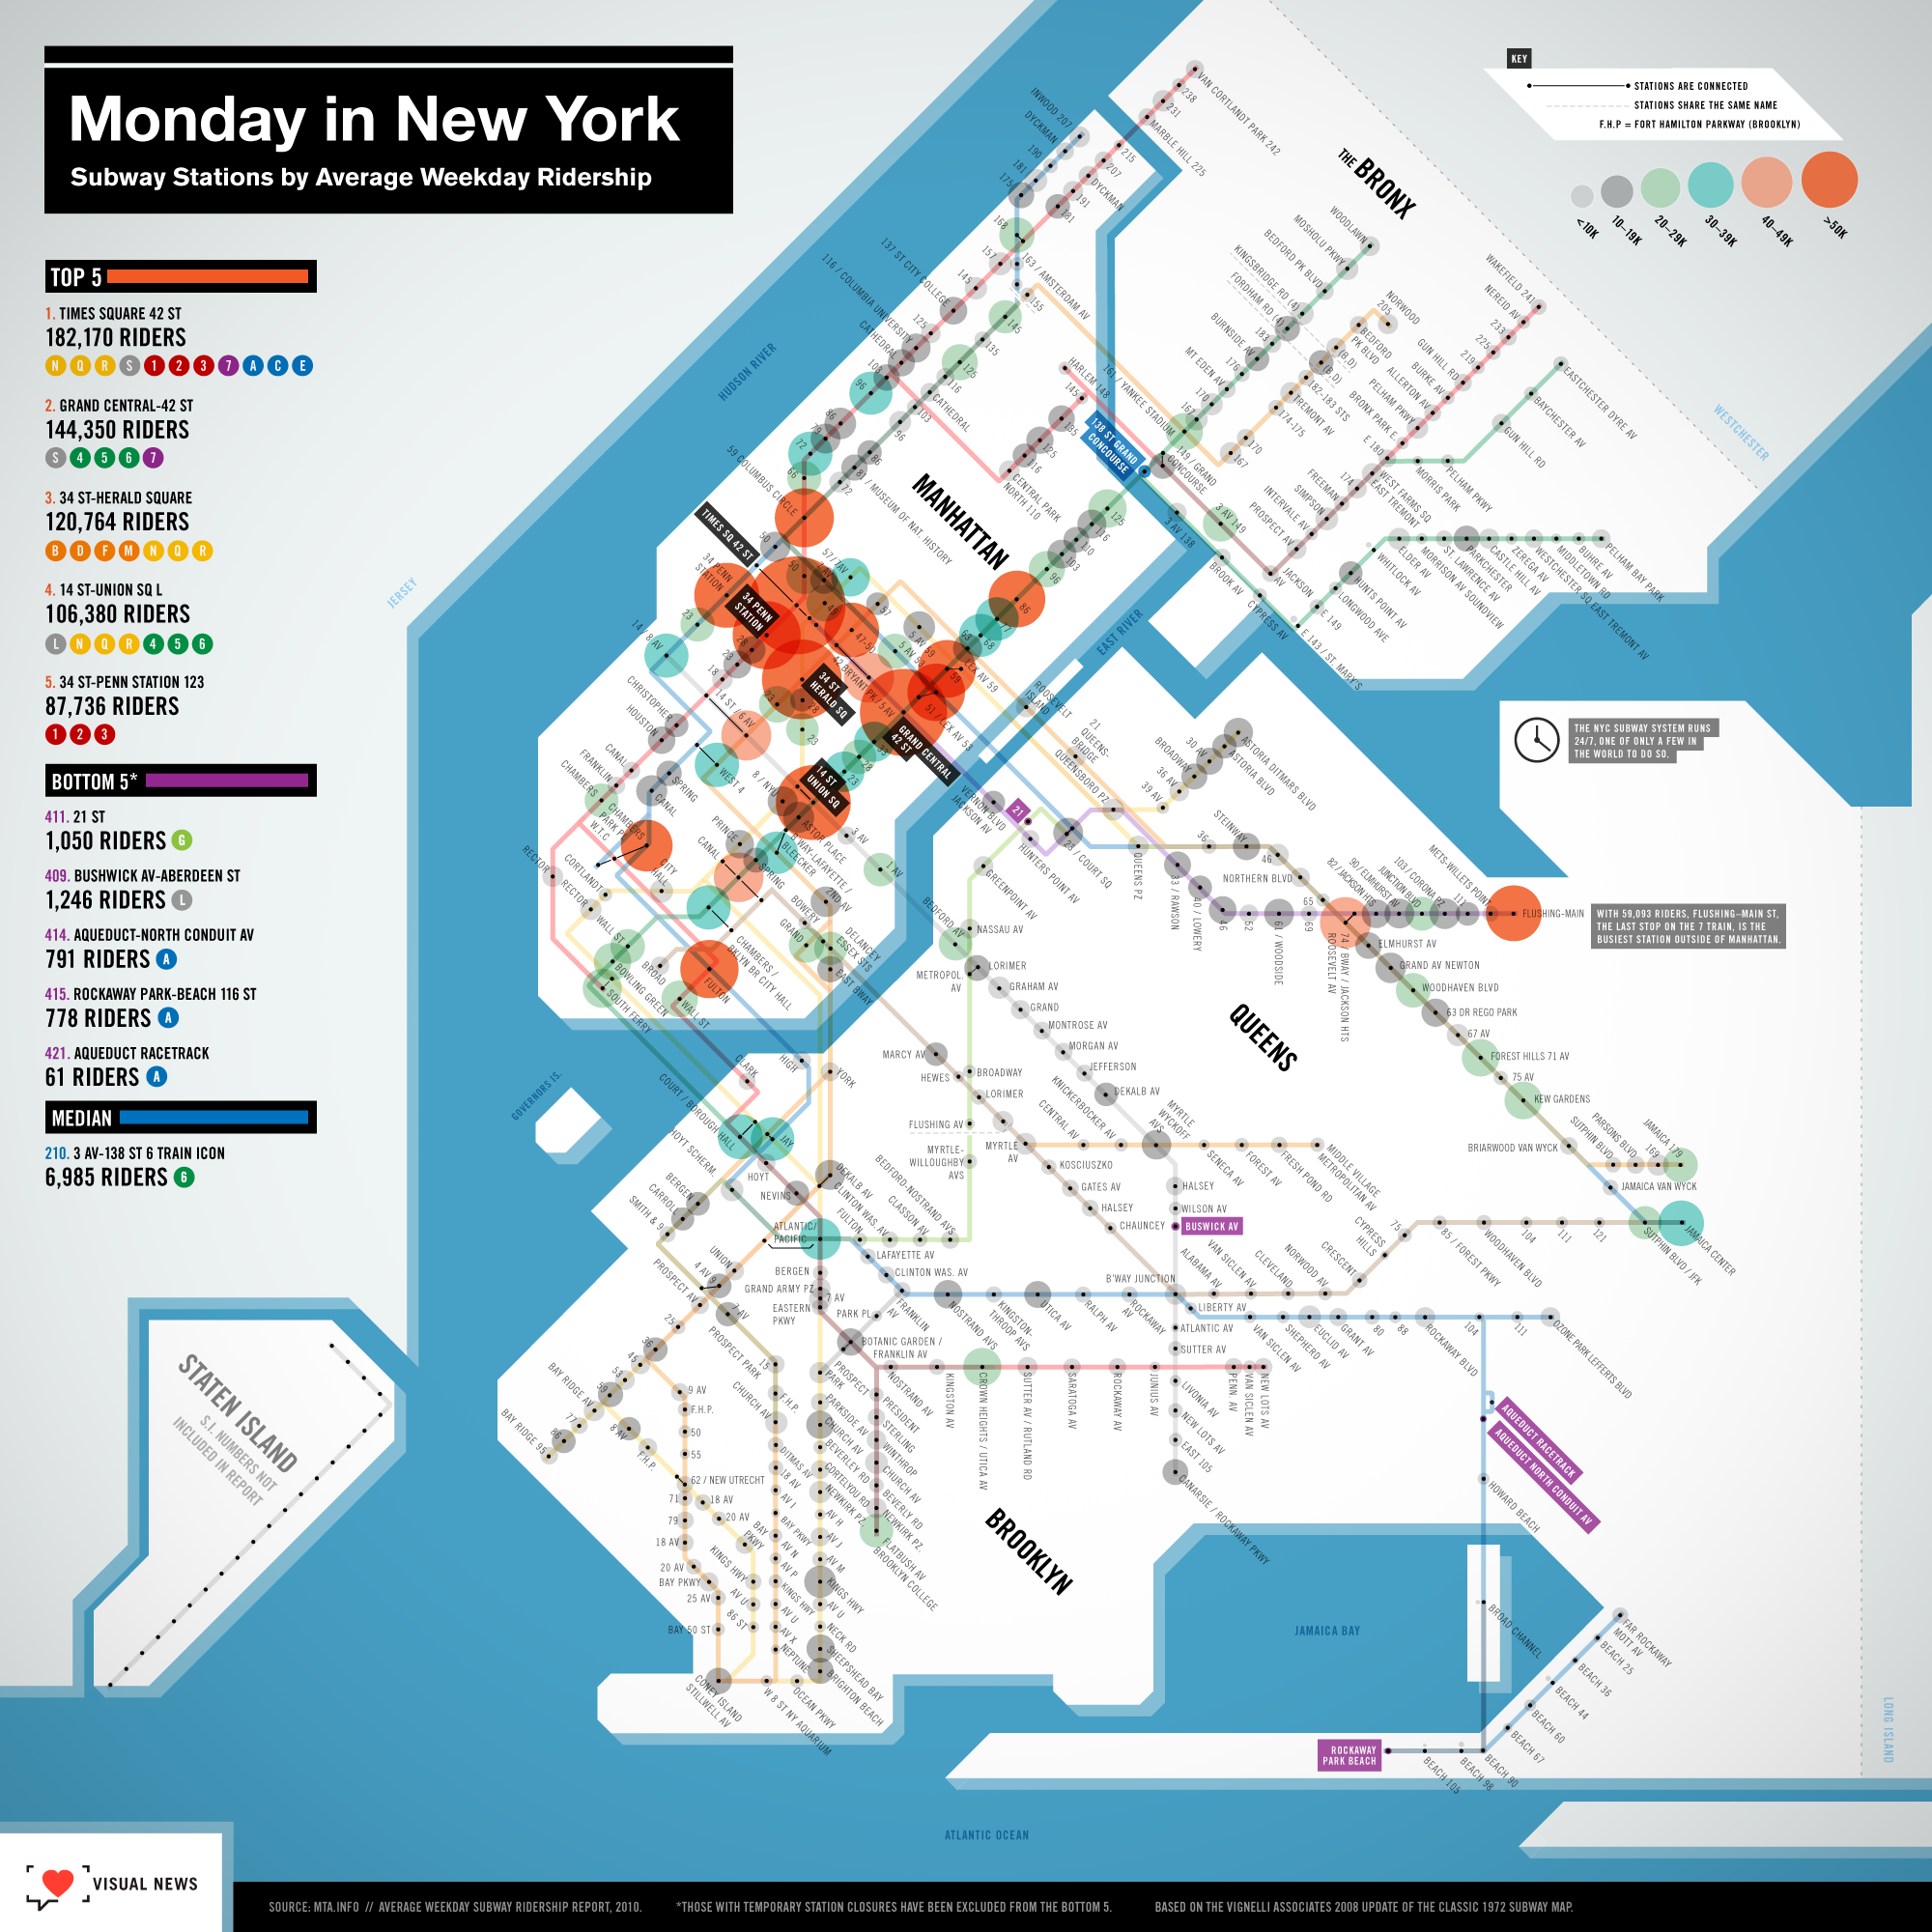 What Are Mondays Like In New York Very Interesting Map Stopping - New york map data